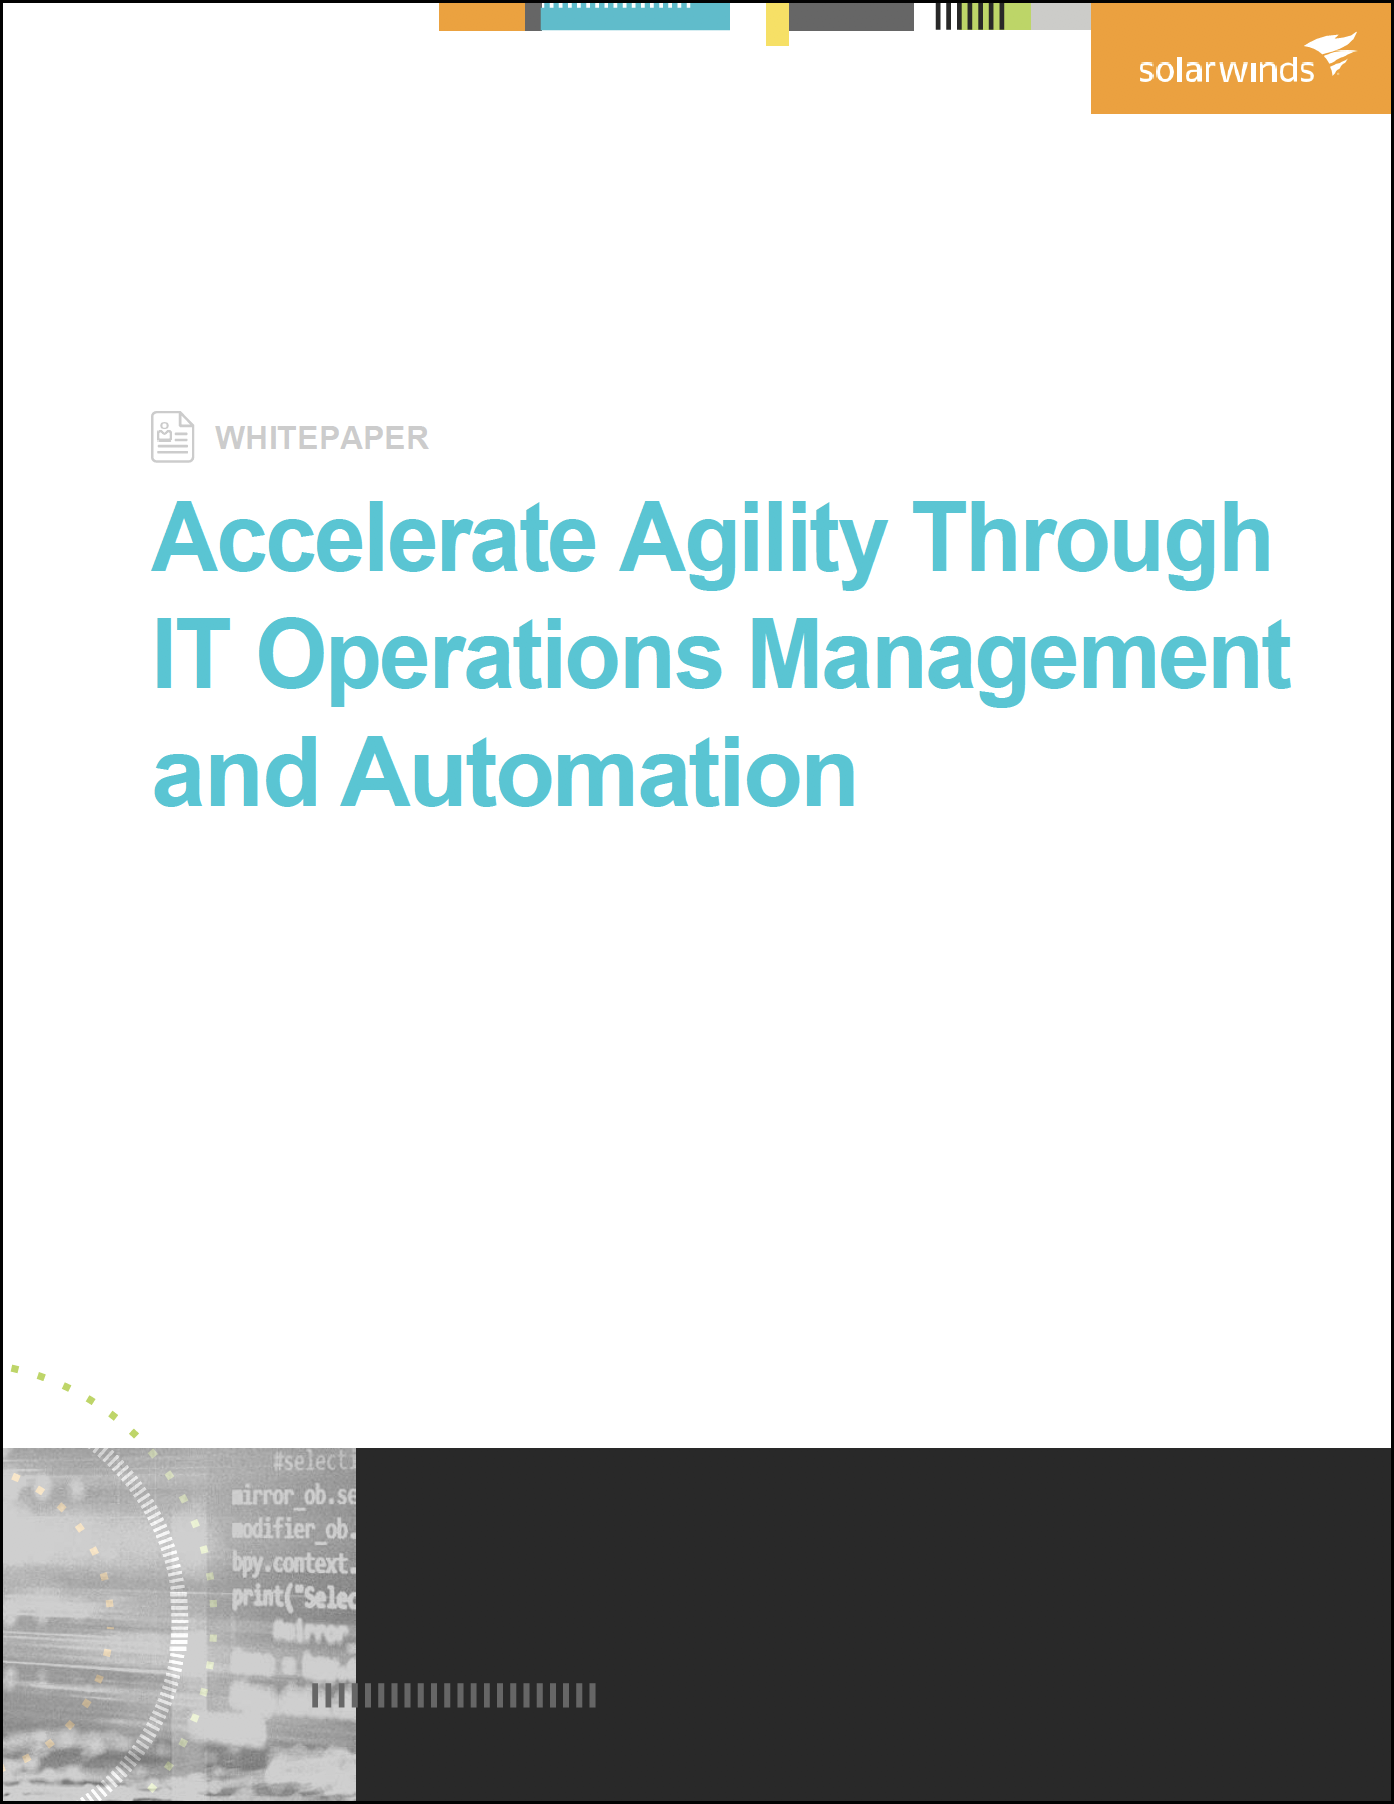 SolarWinds accelerate-agility-itom-automation_Whitepaper Cover